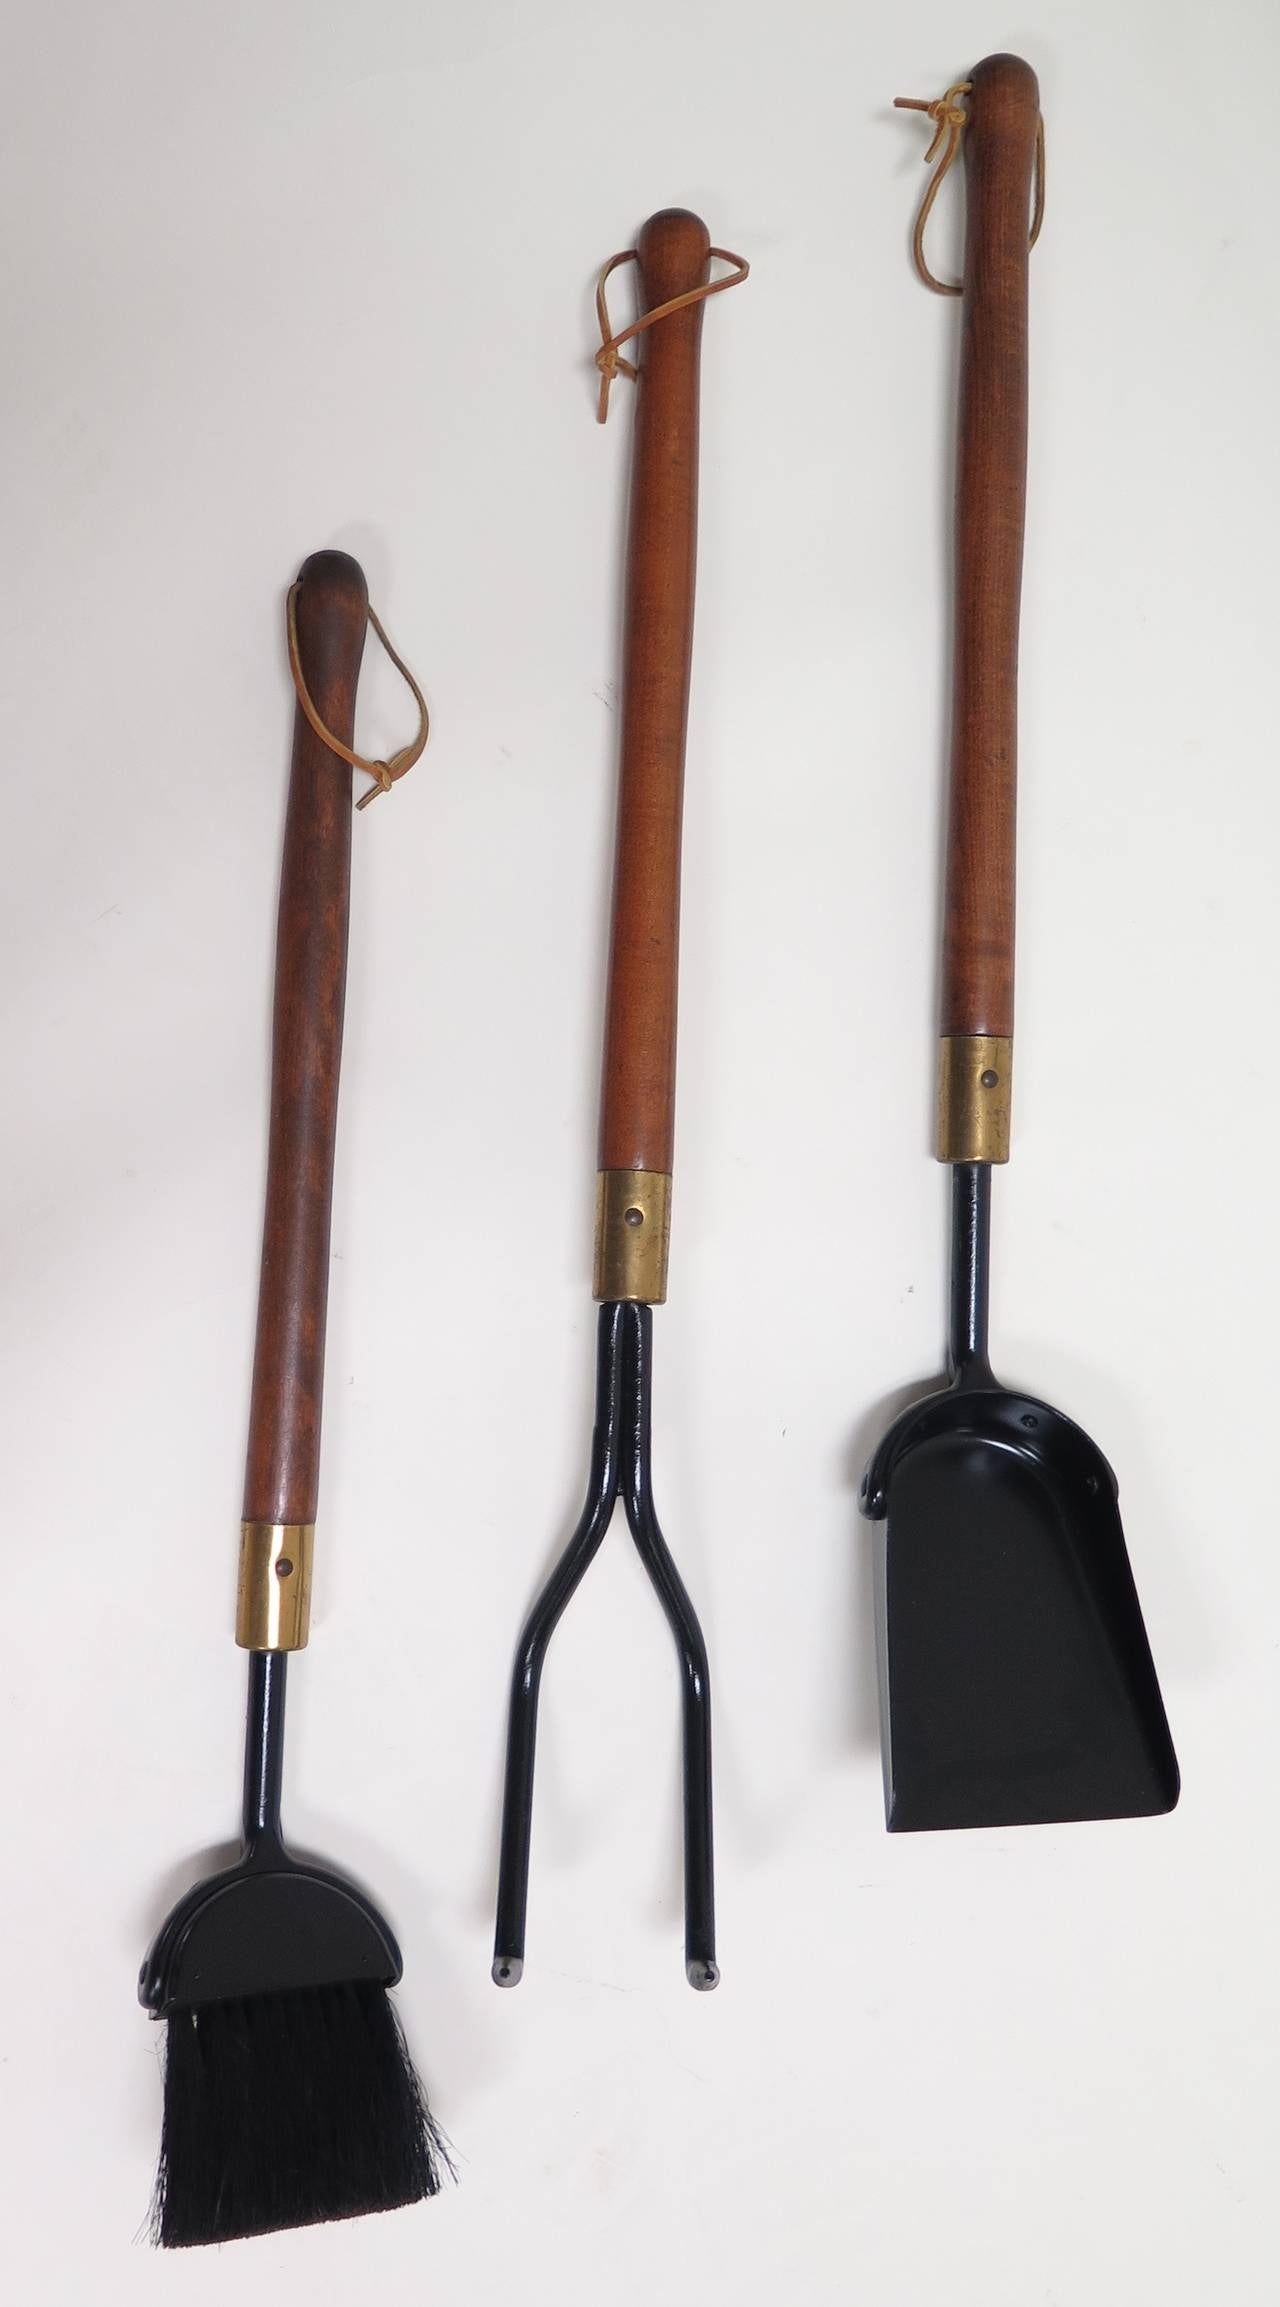 1950 Seymour Co. Heavy Duty Fireplace Tool Set at 1stdibs